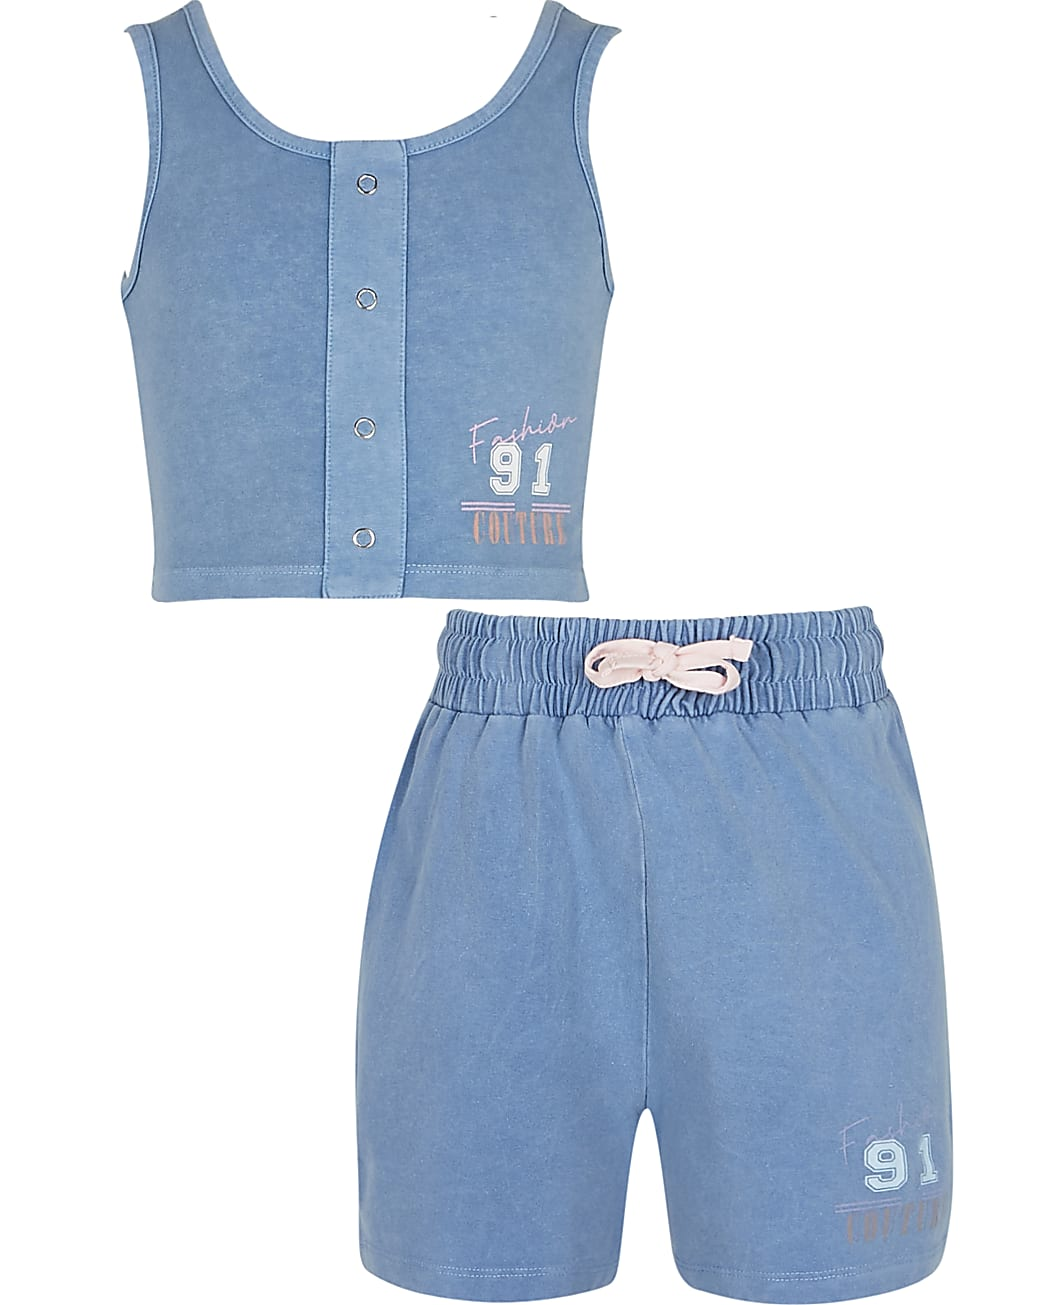 Girls blue crop top and shorts outfit